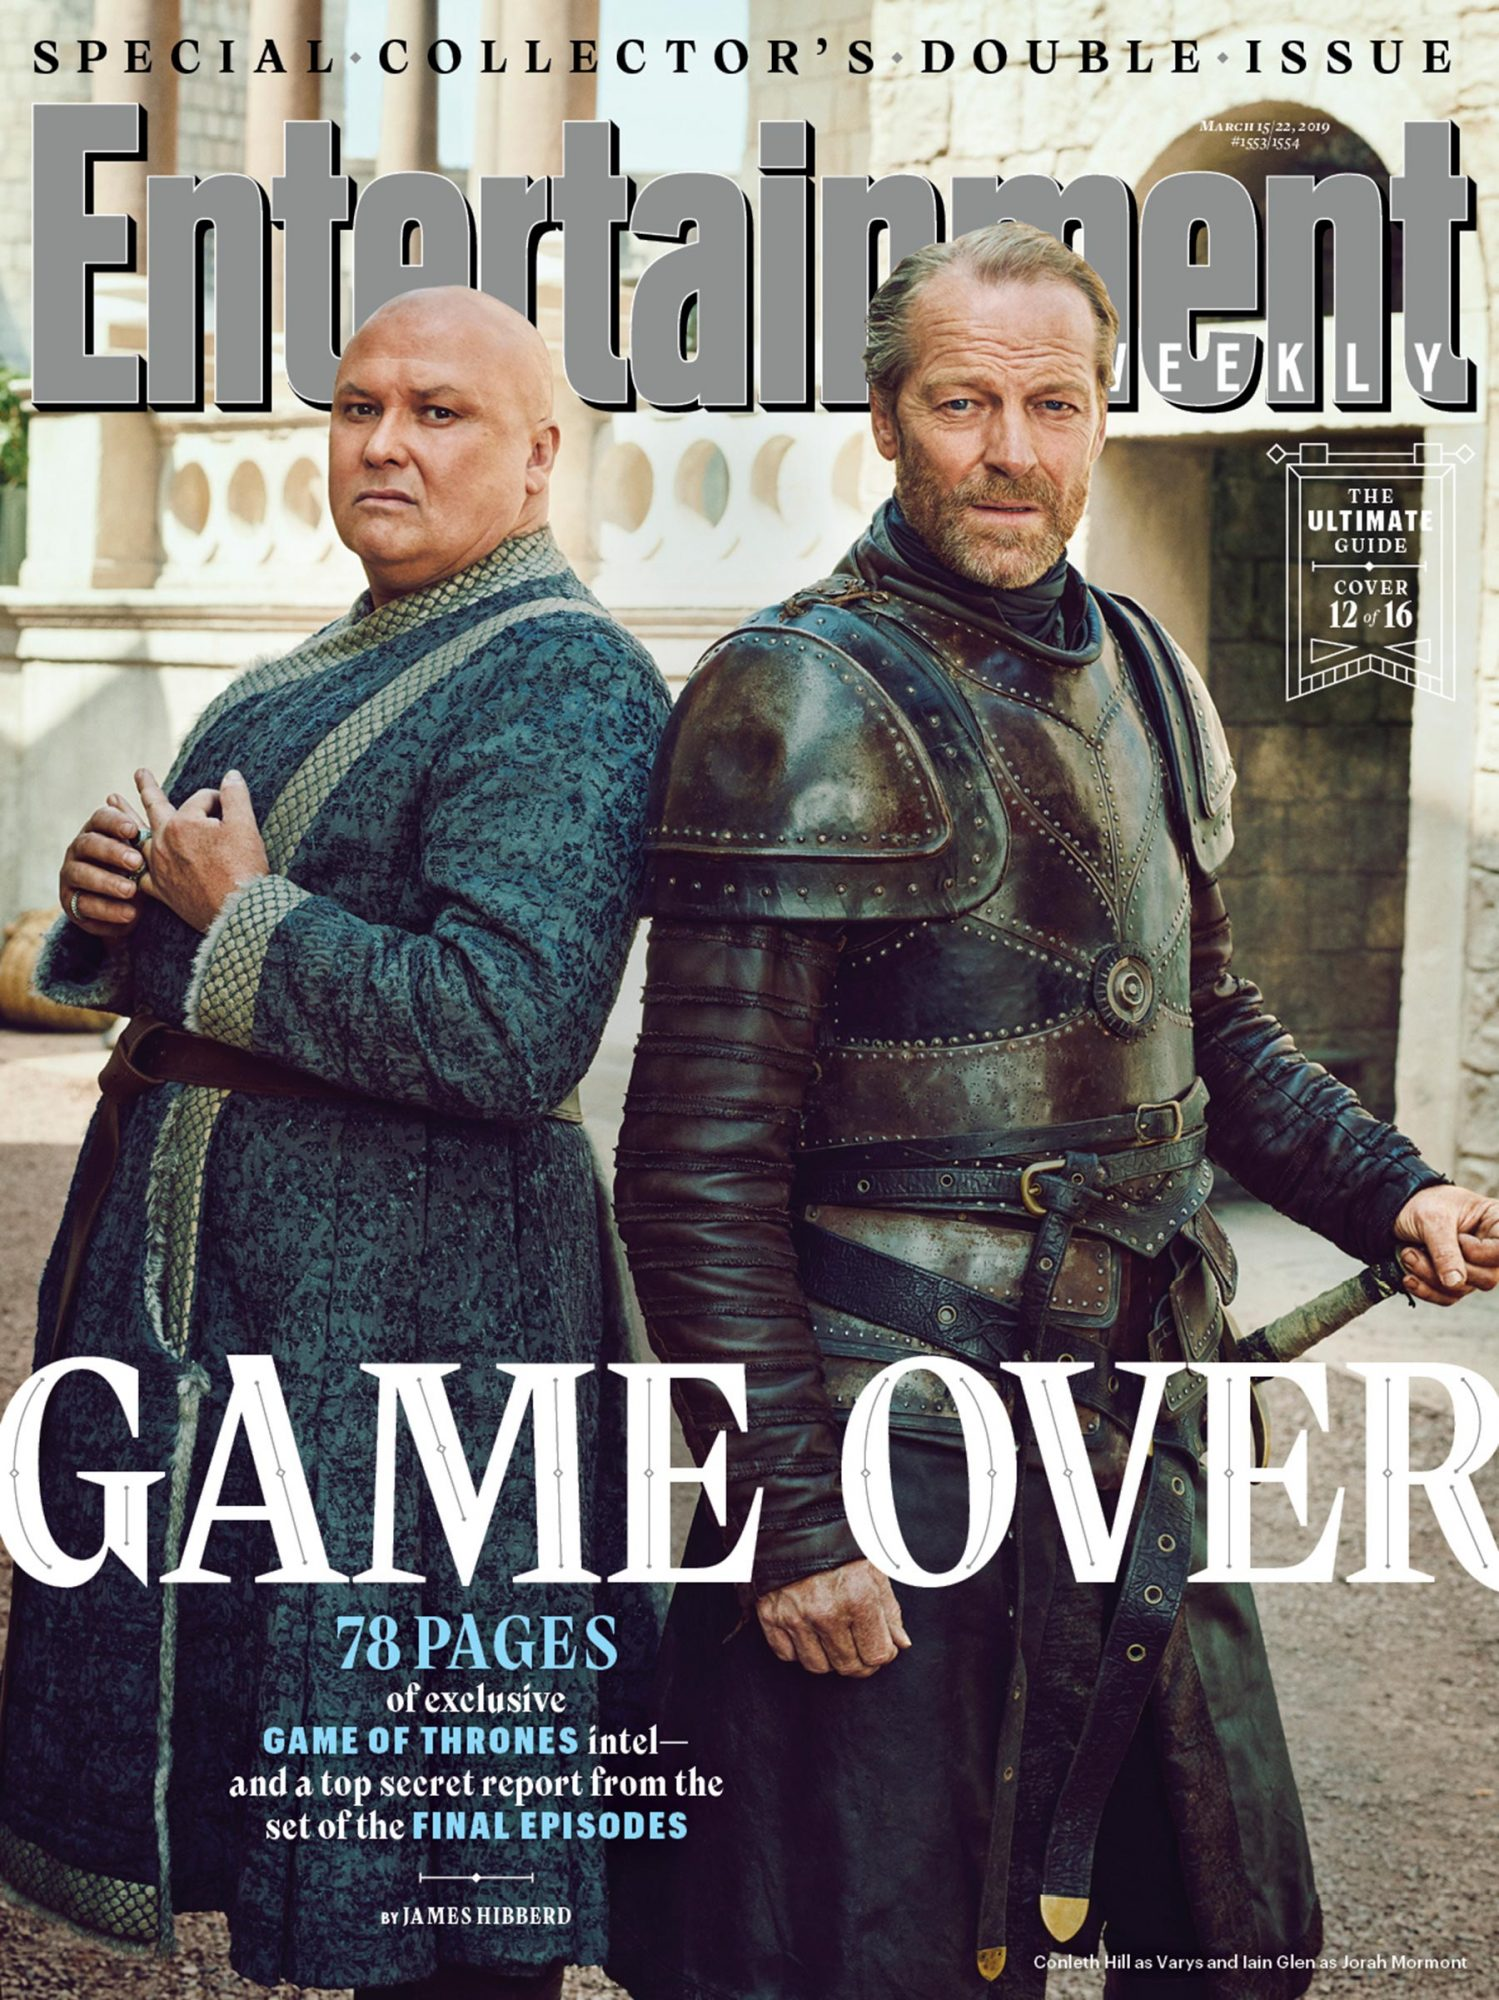 Conleth Hill and Iain Glen as  Varys and Jorah Mormont